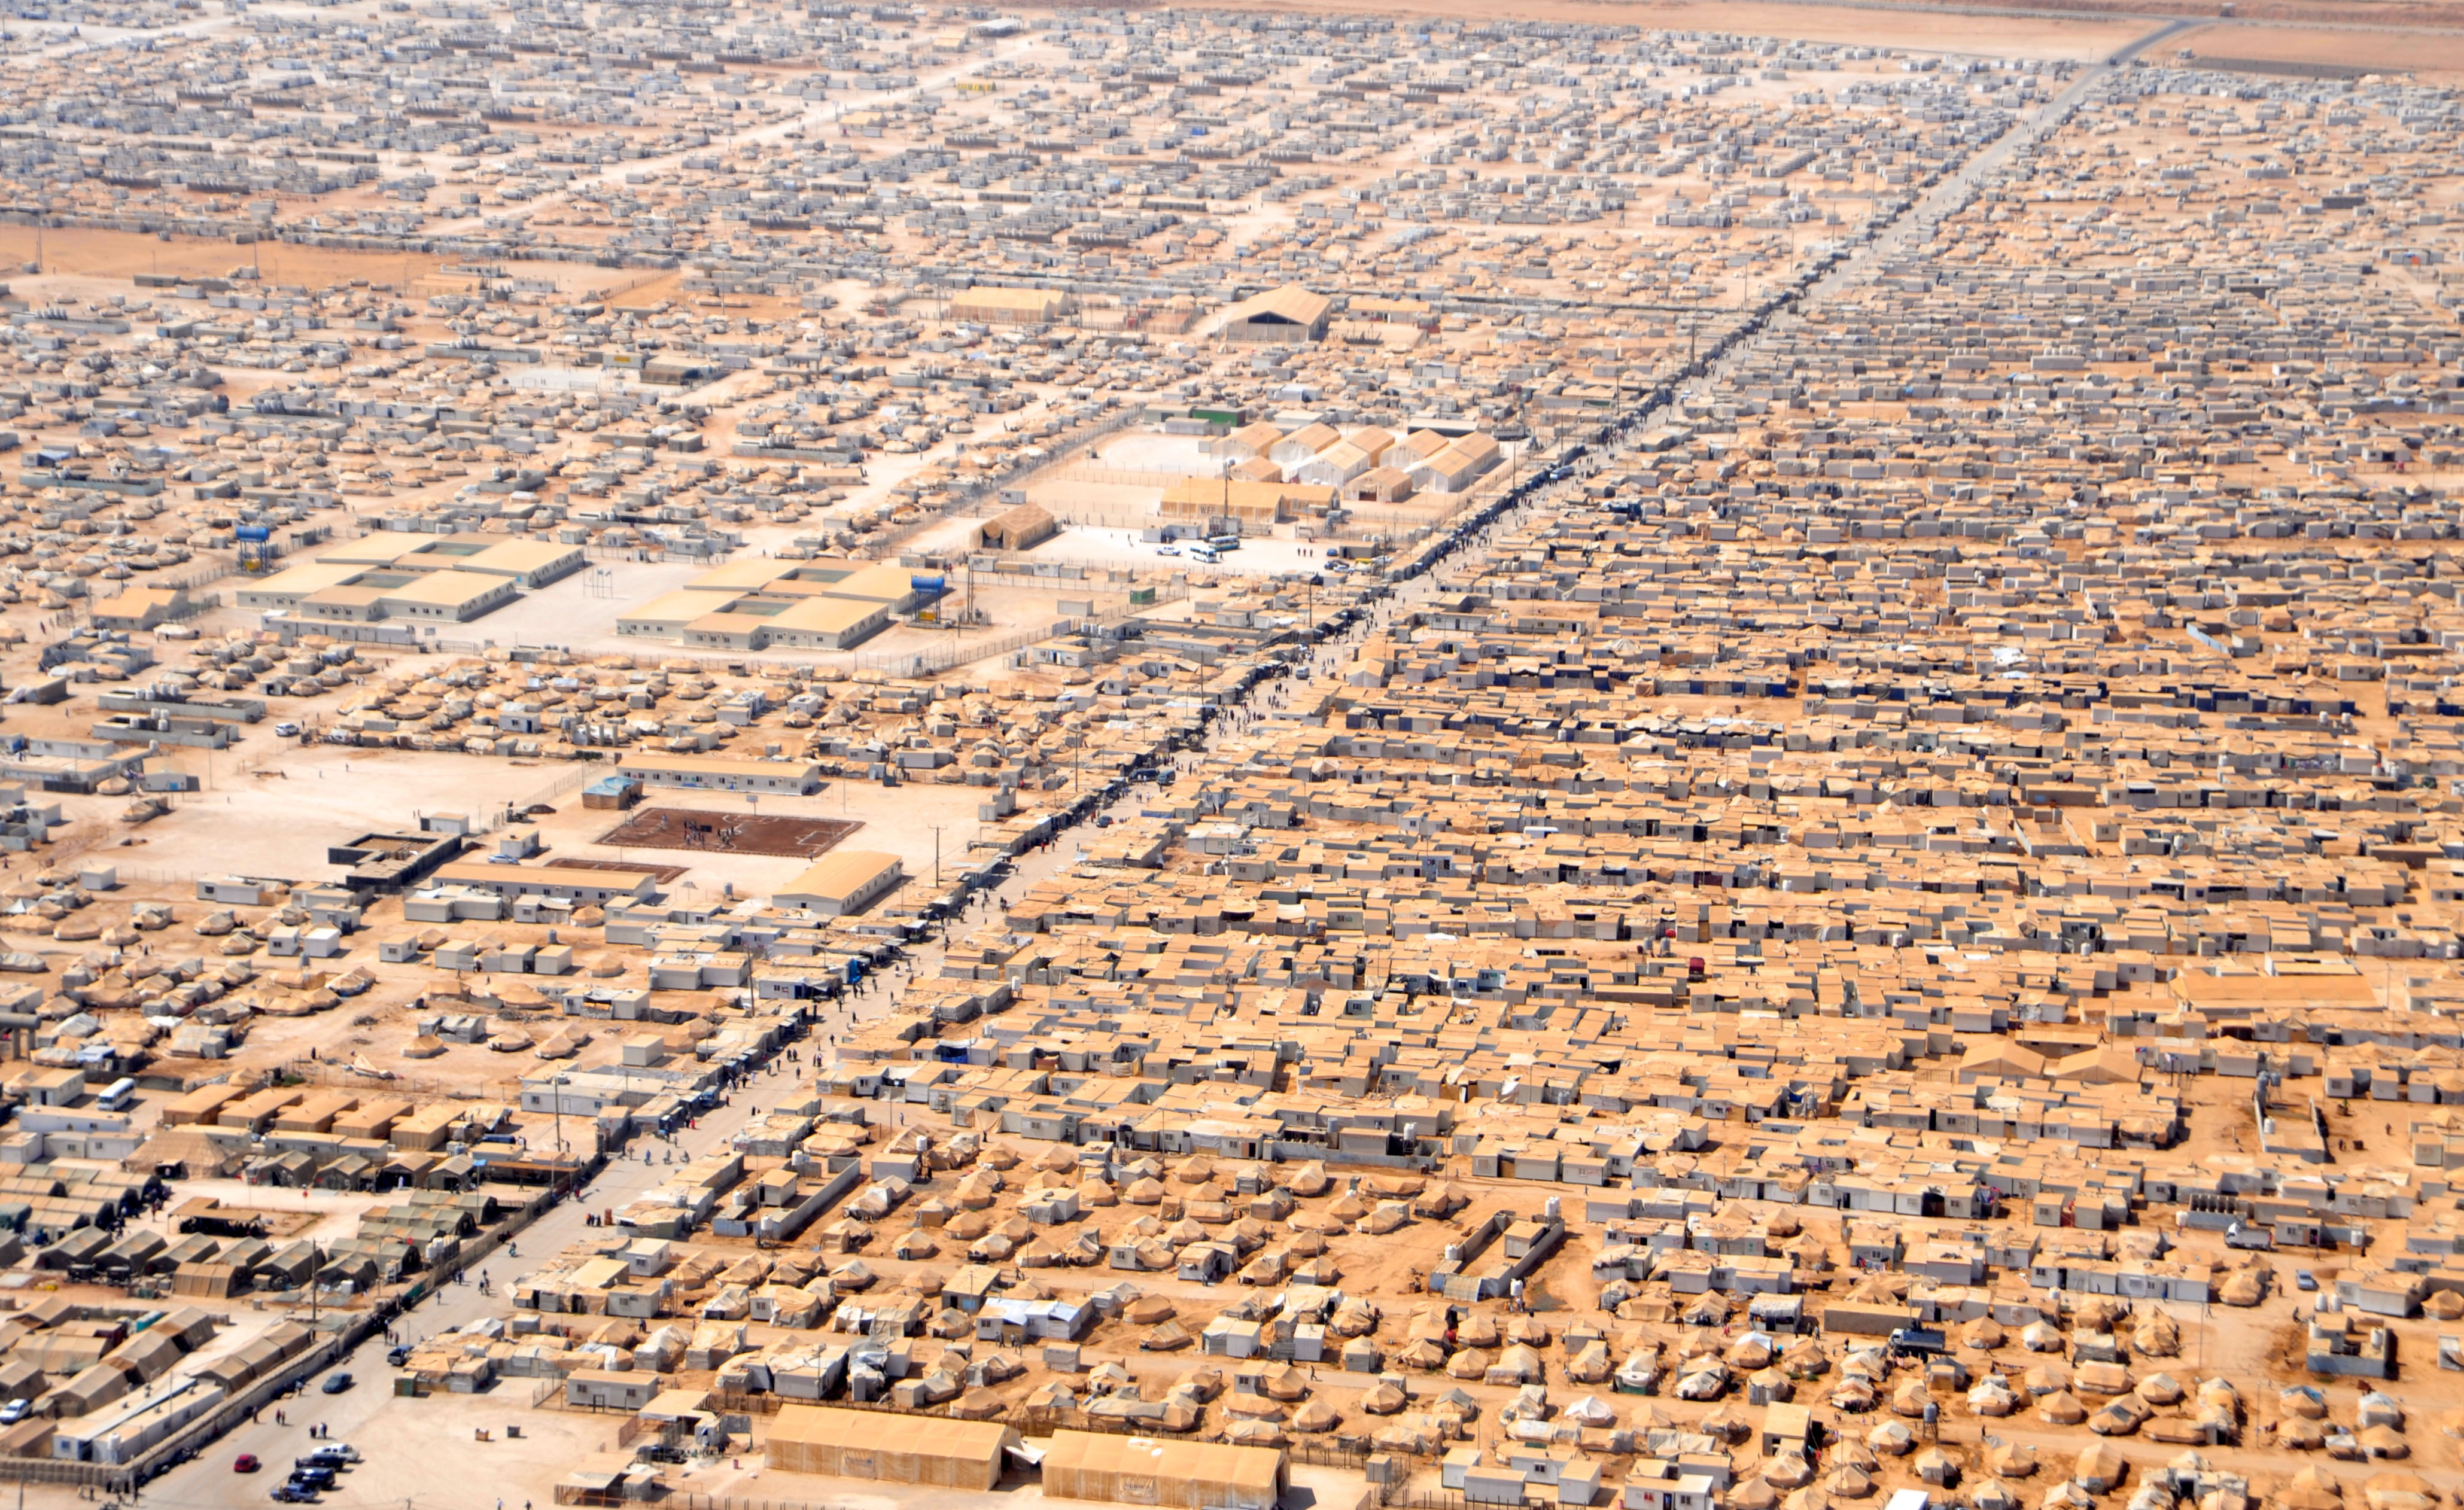 an_aerial_view_of_the_za_atri_refugee_camp.jpg